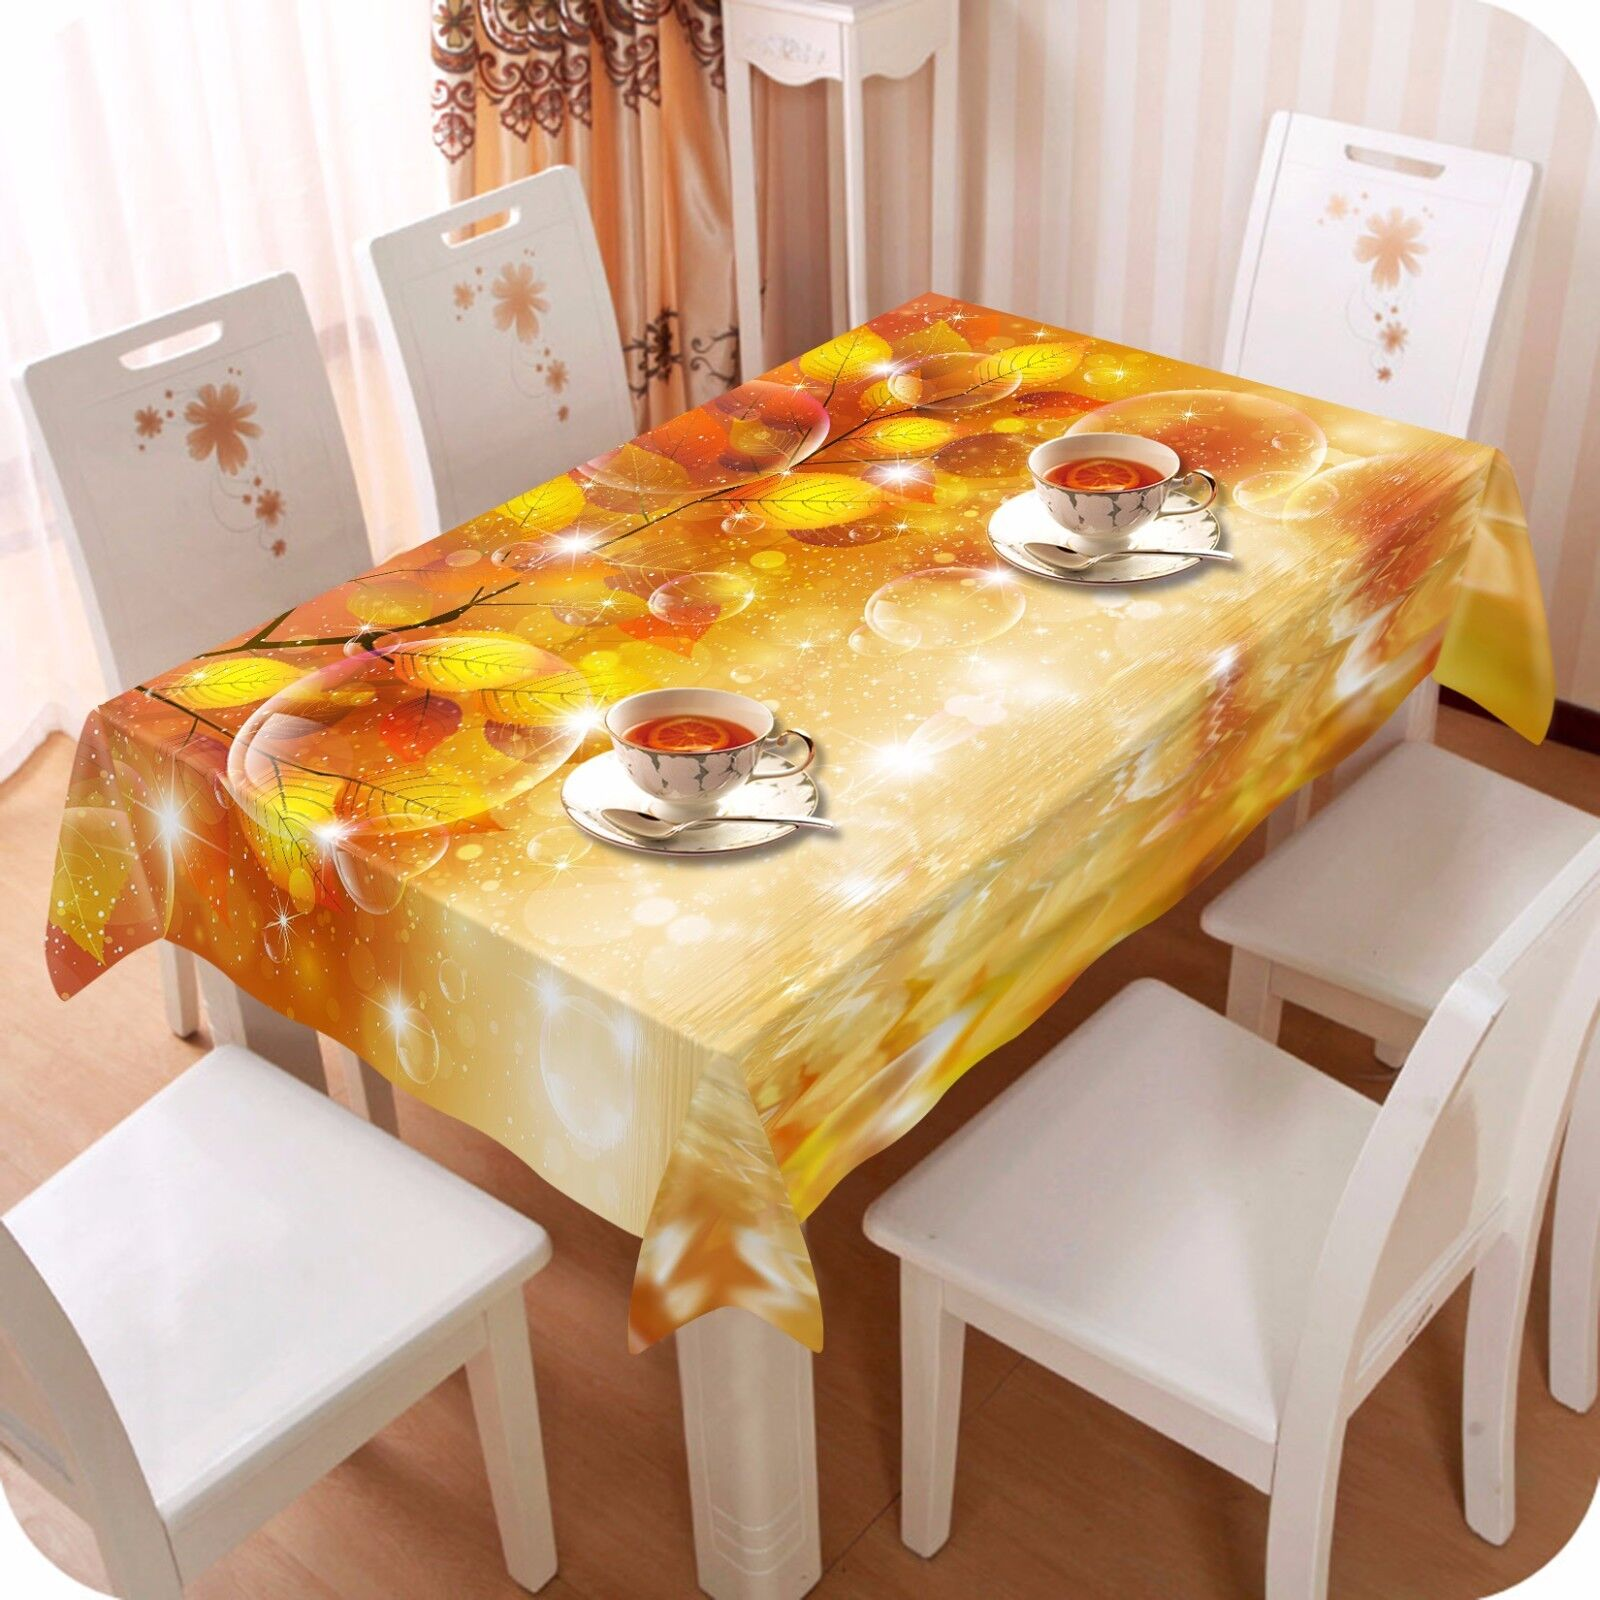 3D Leaf Bubble Tablecloth Table Cover Cloth Birthday Party AJ WALLPAPER UK Lemon